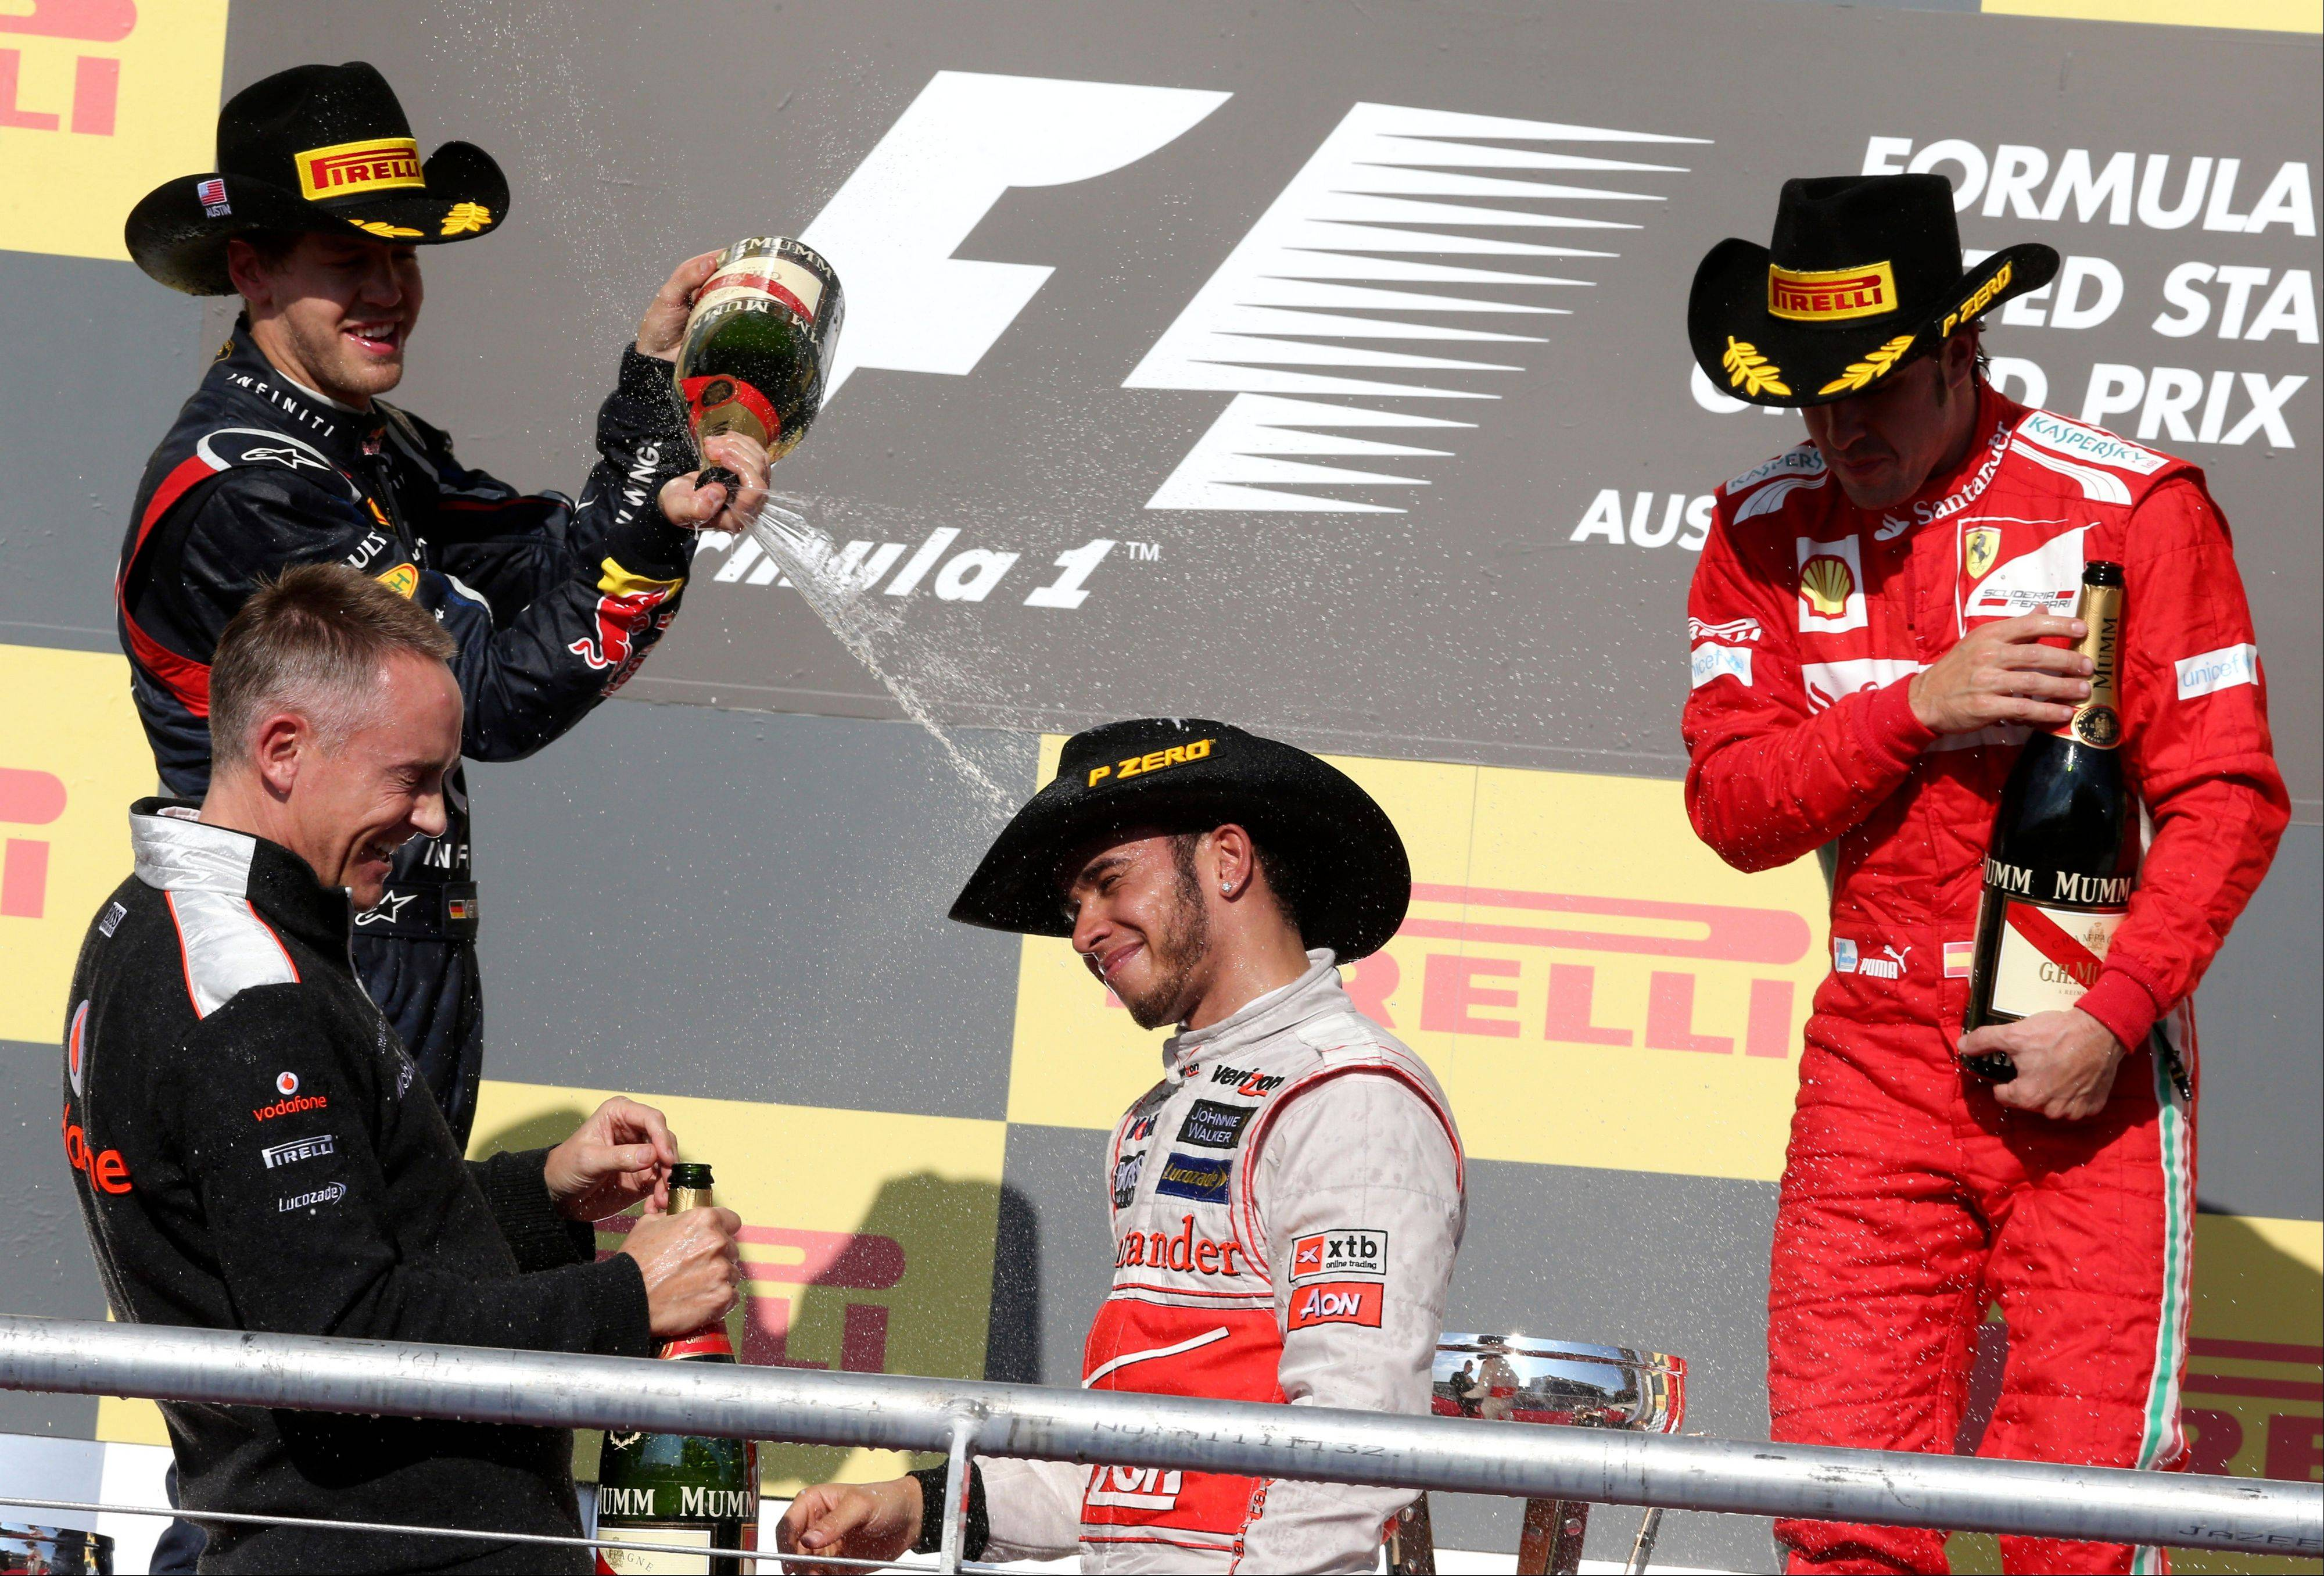 McLaren Mercedes driver Lewis Hamilton, center, of Britain, is sprayed by Red Bull driver Sebastian Vettel, top left, of Germany after Hamilton won the Formula One U.S. Grand Prix auto race at the Circuit of the Americas Sunday in Austin, Texas. Ferrari driver Fernando Alonso, right, of Spain finished third.